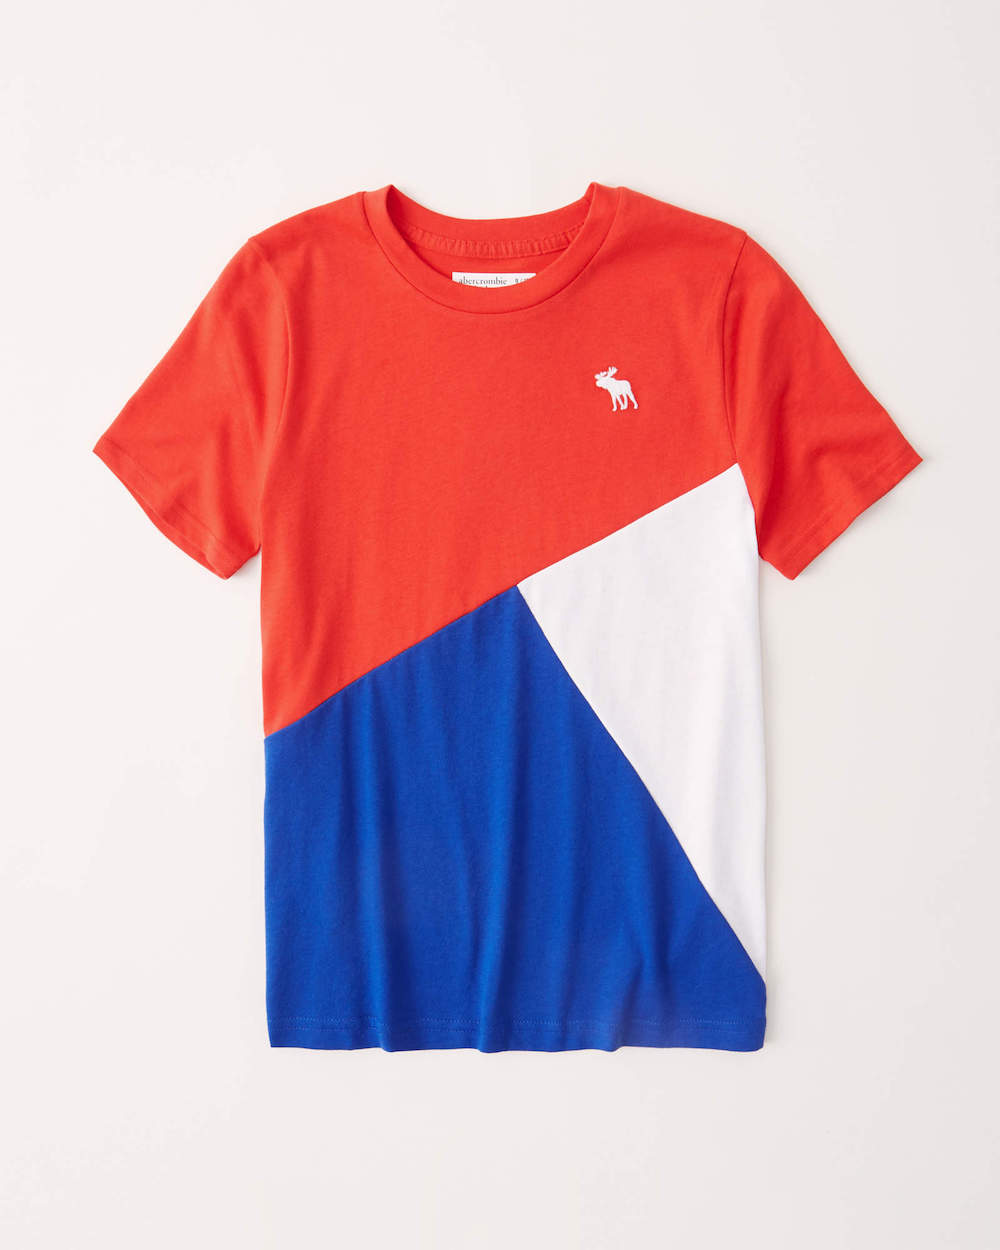 Abercrombie Colorblock T-shirt DIY from Skirt Fixation